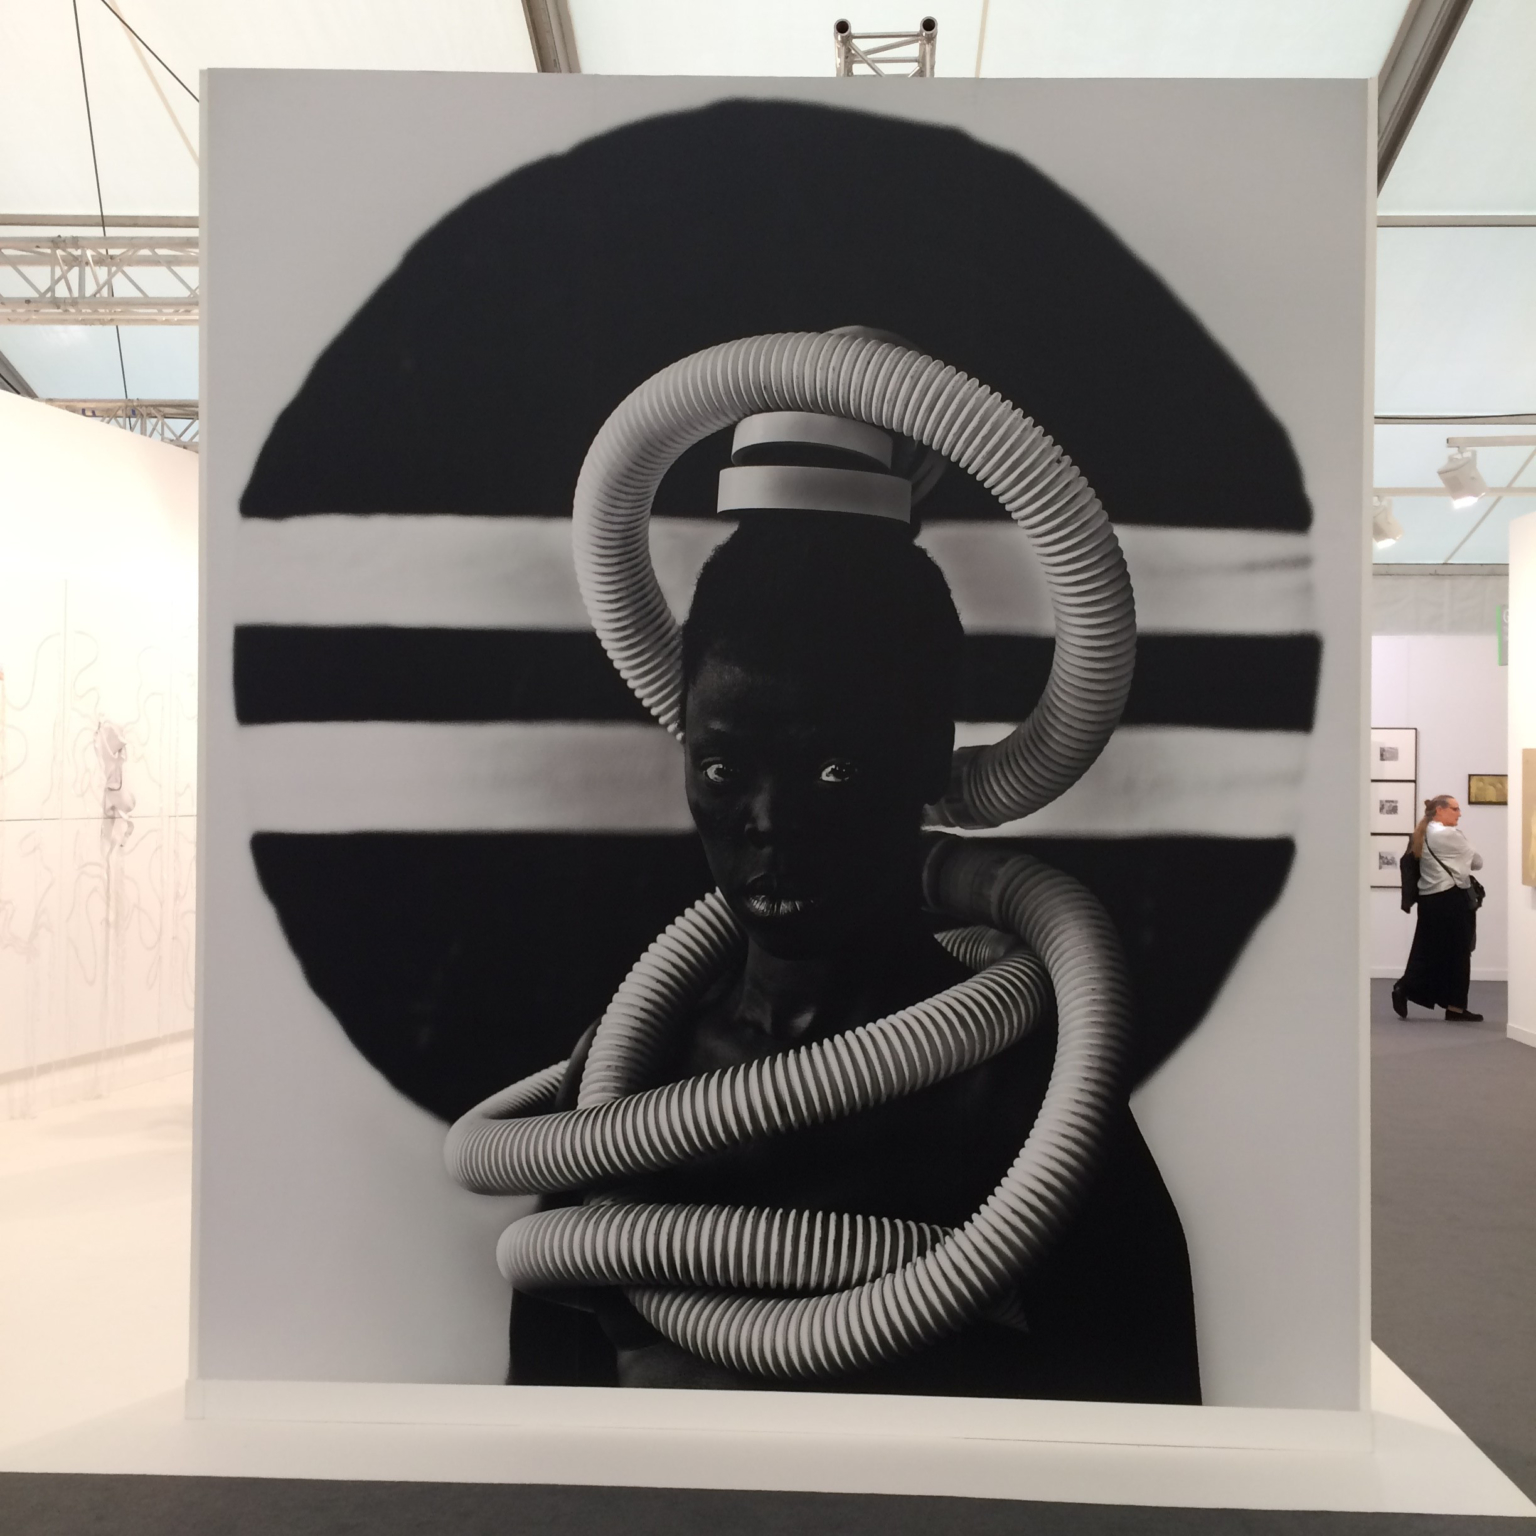 Zanele Muholi at Stevenson gallery, Frieze London 2017. Photo: Chris Sharratt